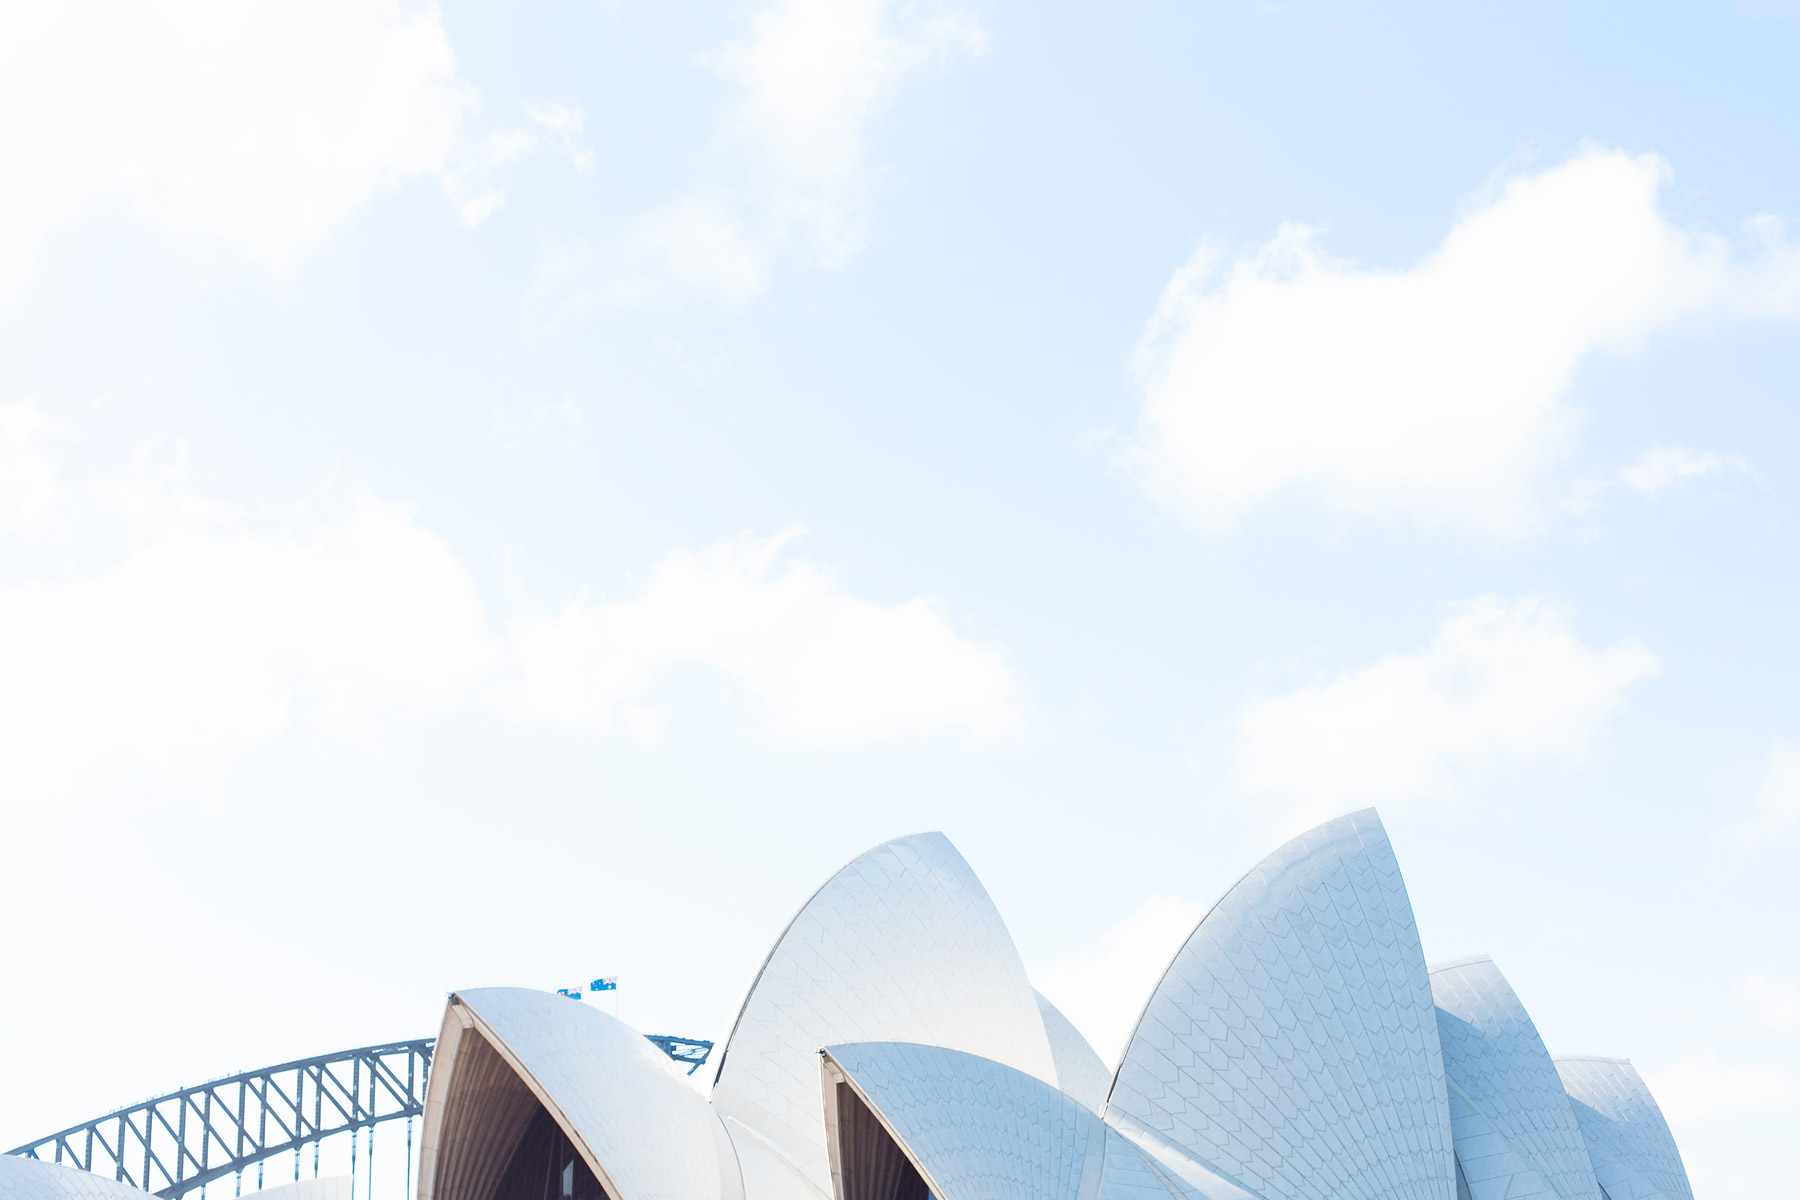 Sydney Opera House photo by Carin Olsson (Paris in Four Months)